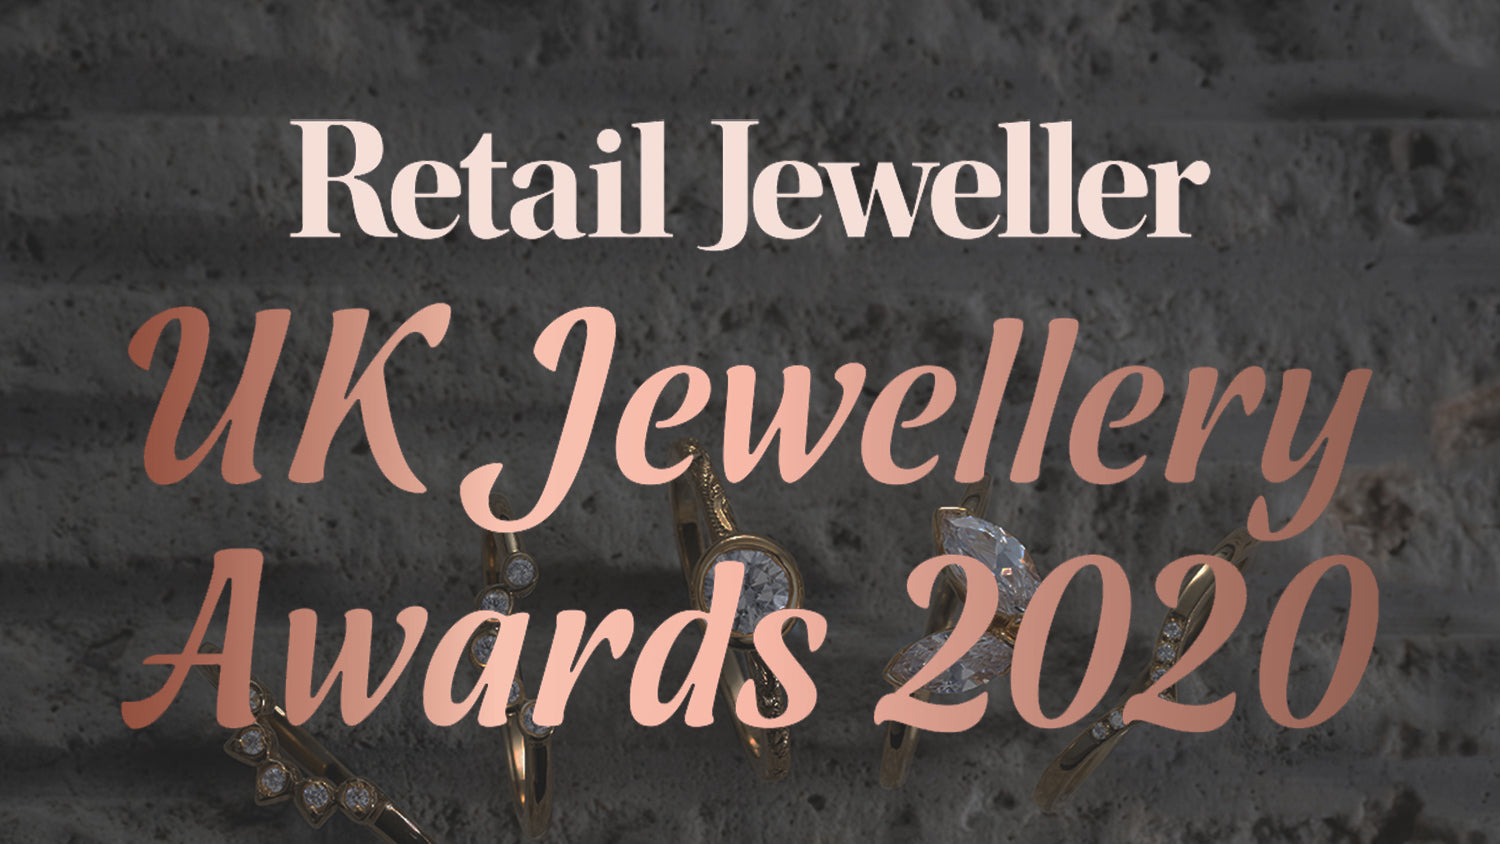 Lebrusan Studio is shortlisted for two UK Jewellery Awards